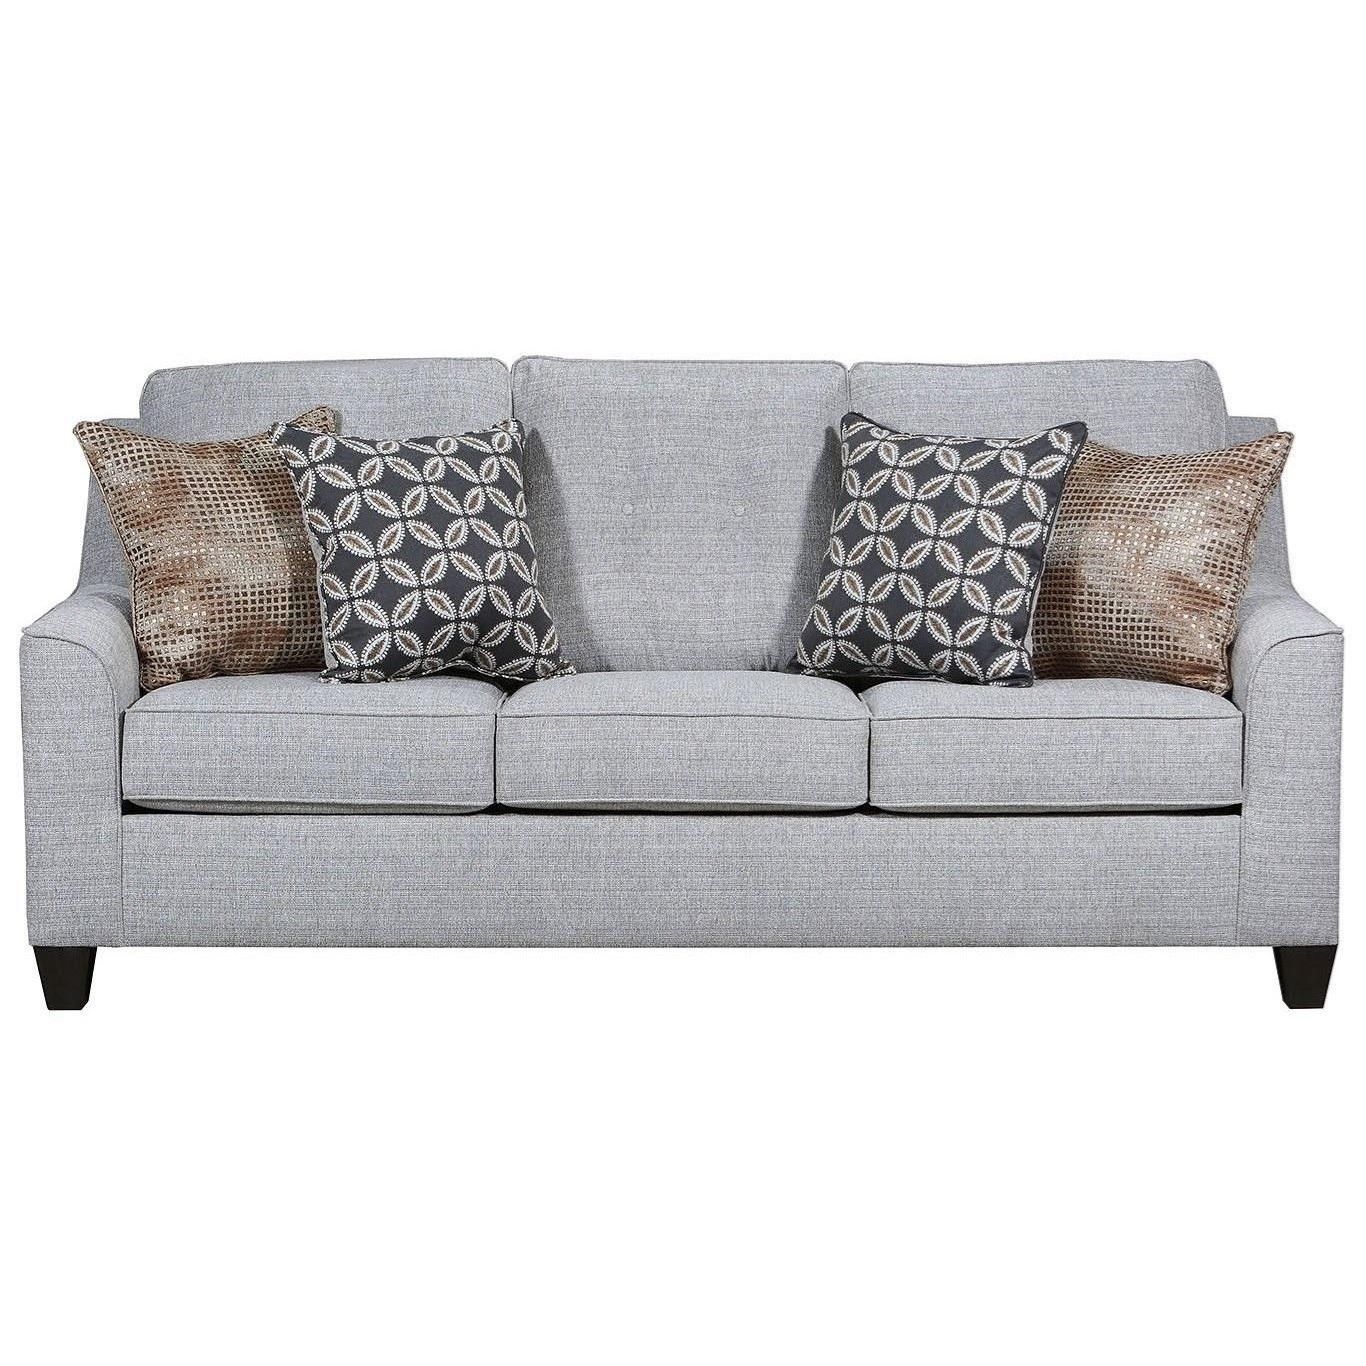 2019 Stationary Sofa by Lane at Powell's Furniture and Mattress